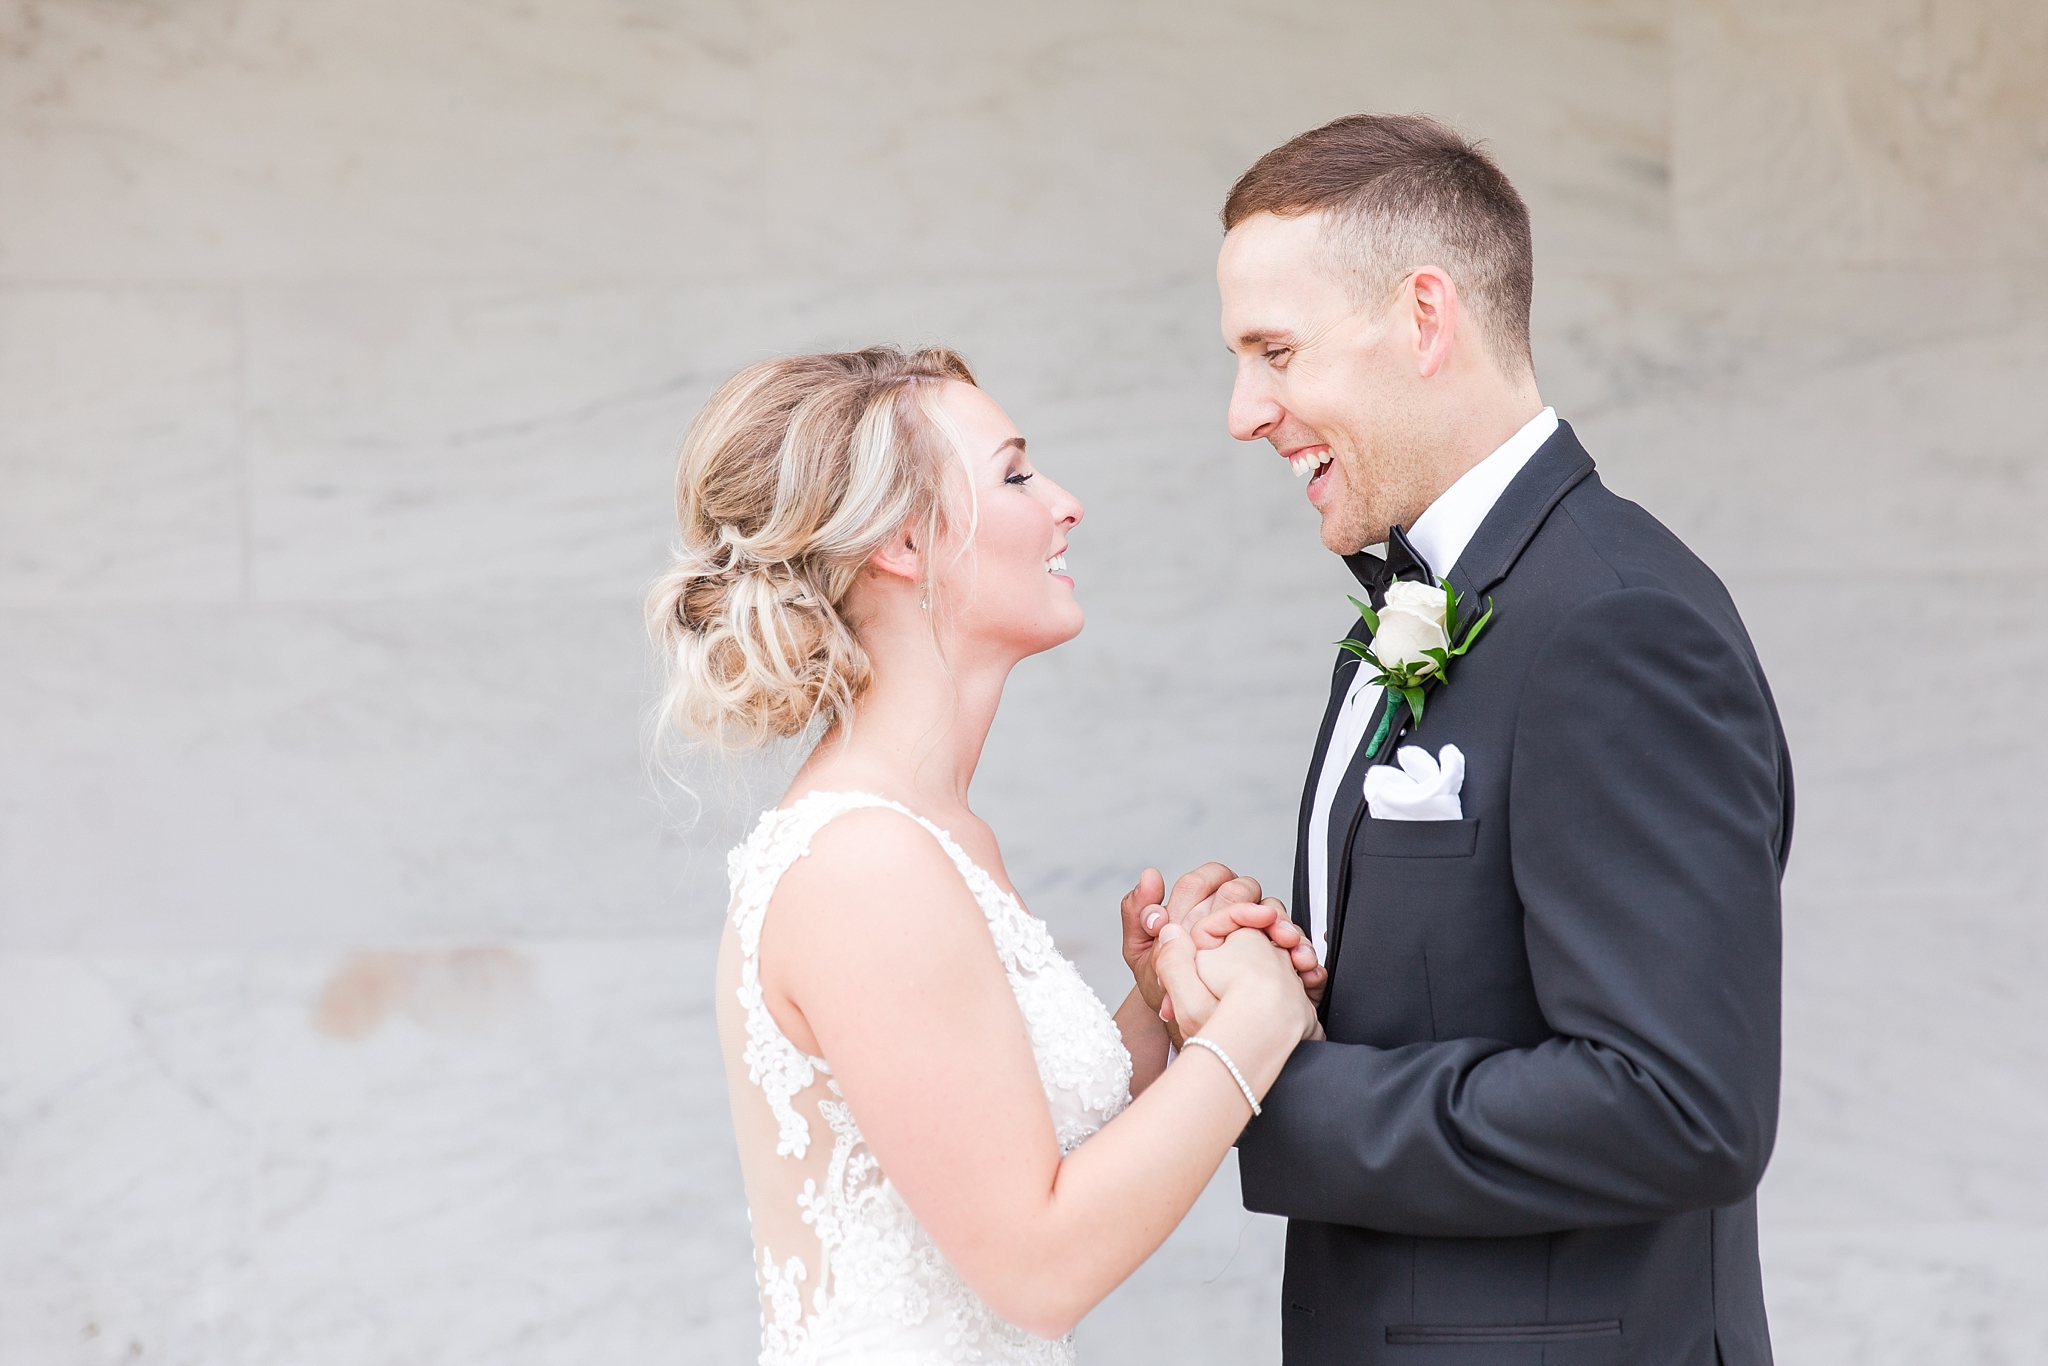 candid-romantic-wedding-photos-at-the-masonic-temple-belle-isle-detroit-institute-of-arts-in-detroit-michigan-by-courtney-carolyn-photography_0061.jpg